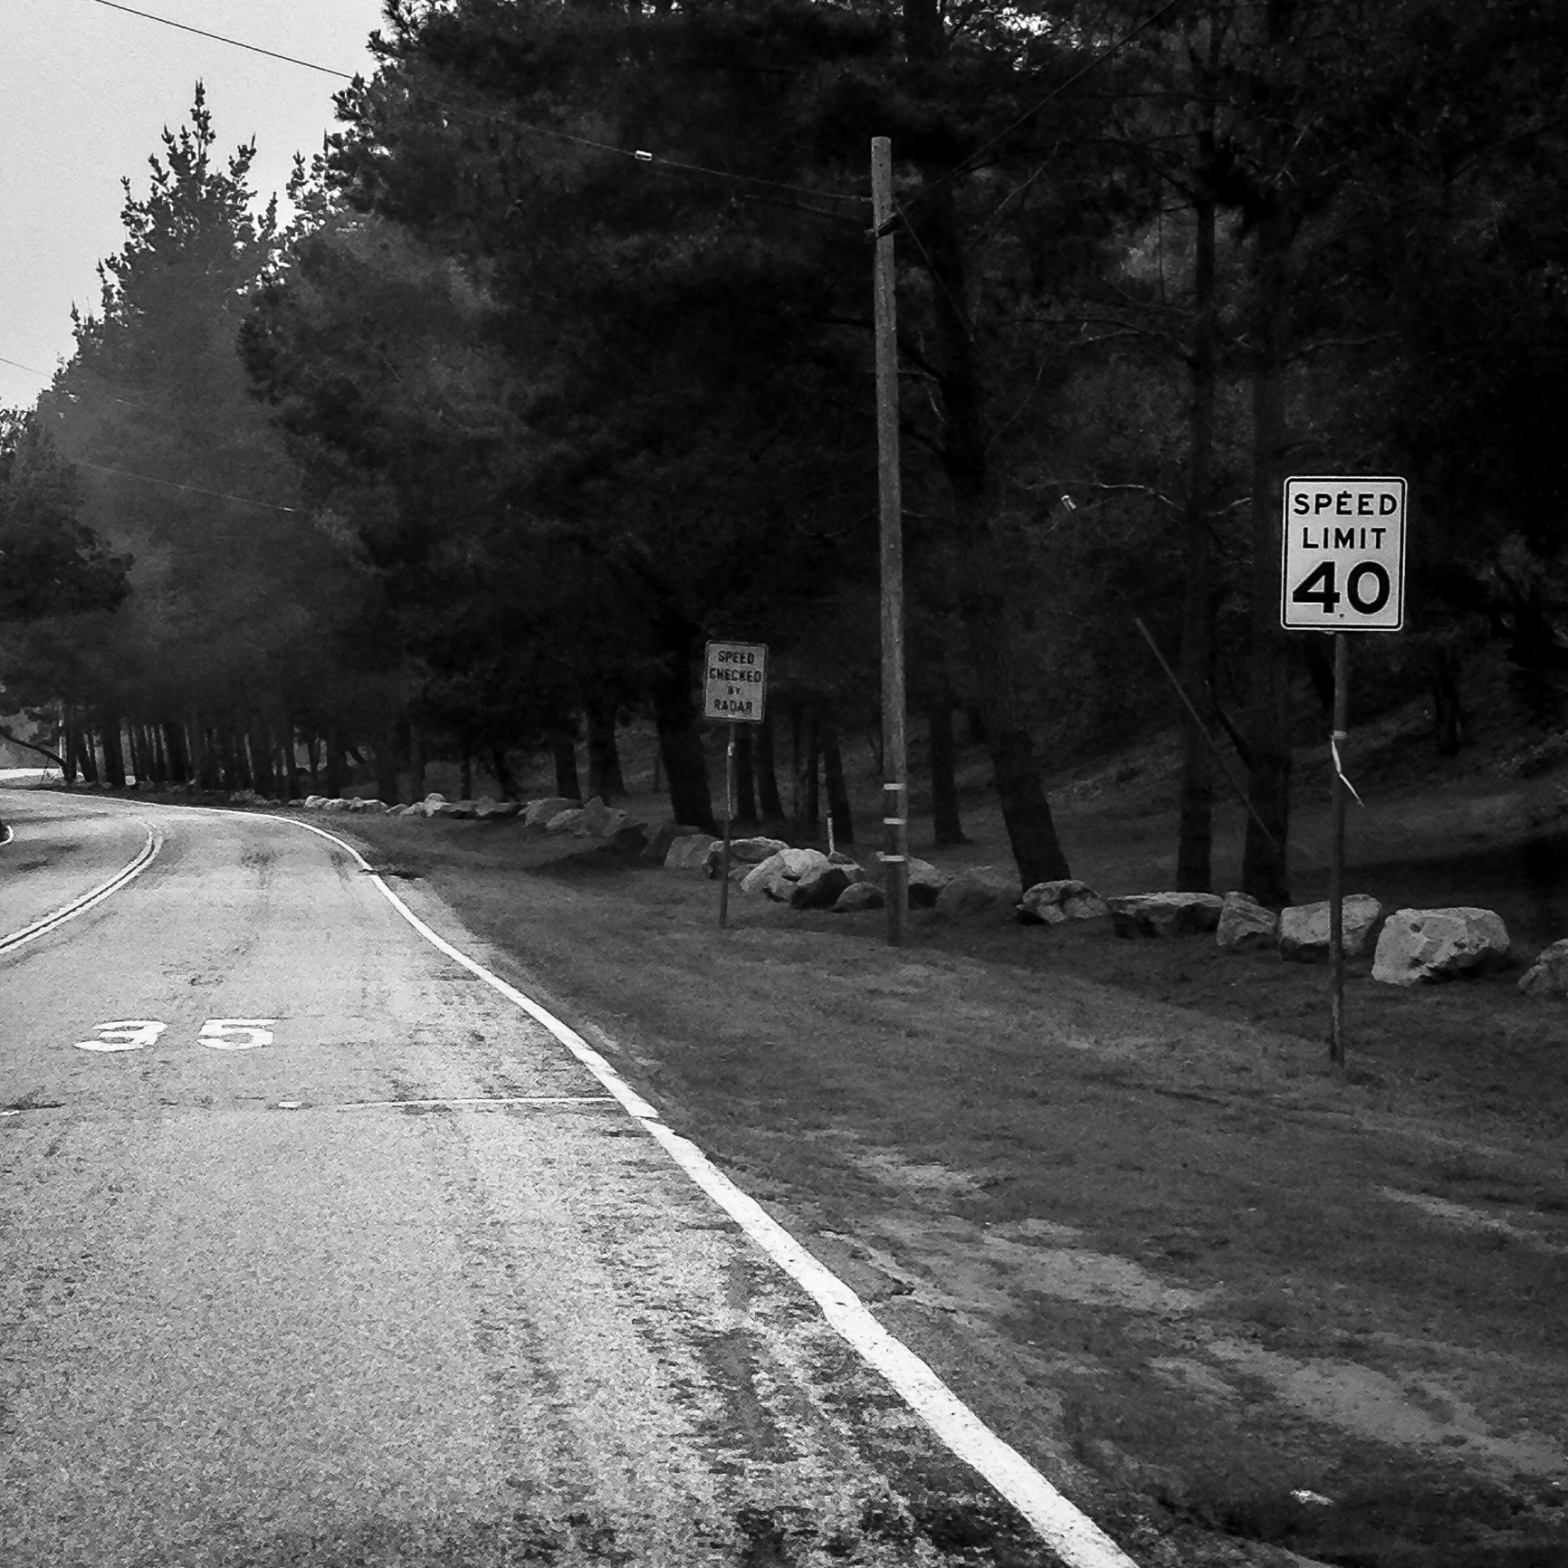 Speed limit confusion on a road in Monterey, California. Road says 35, sign says 40 NotSoSAHM